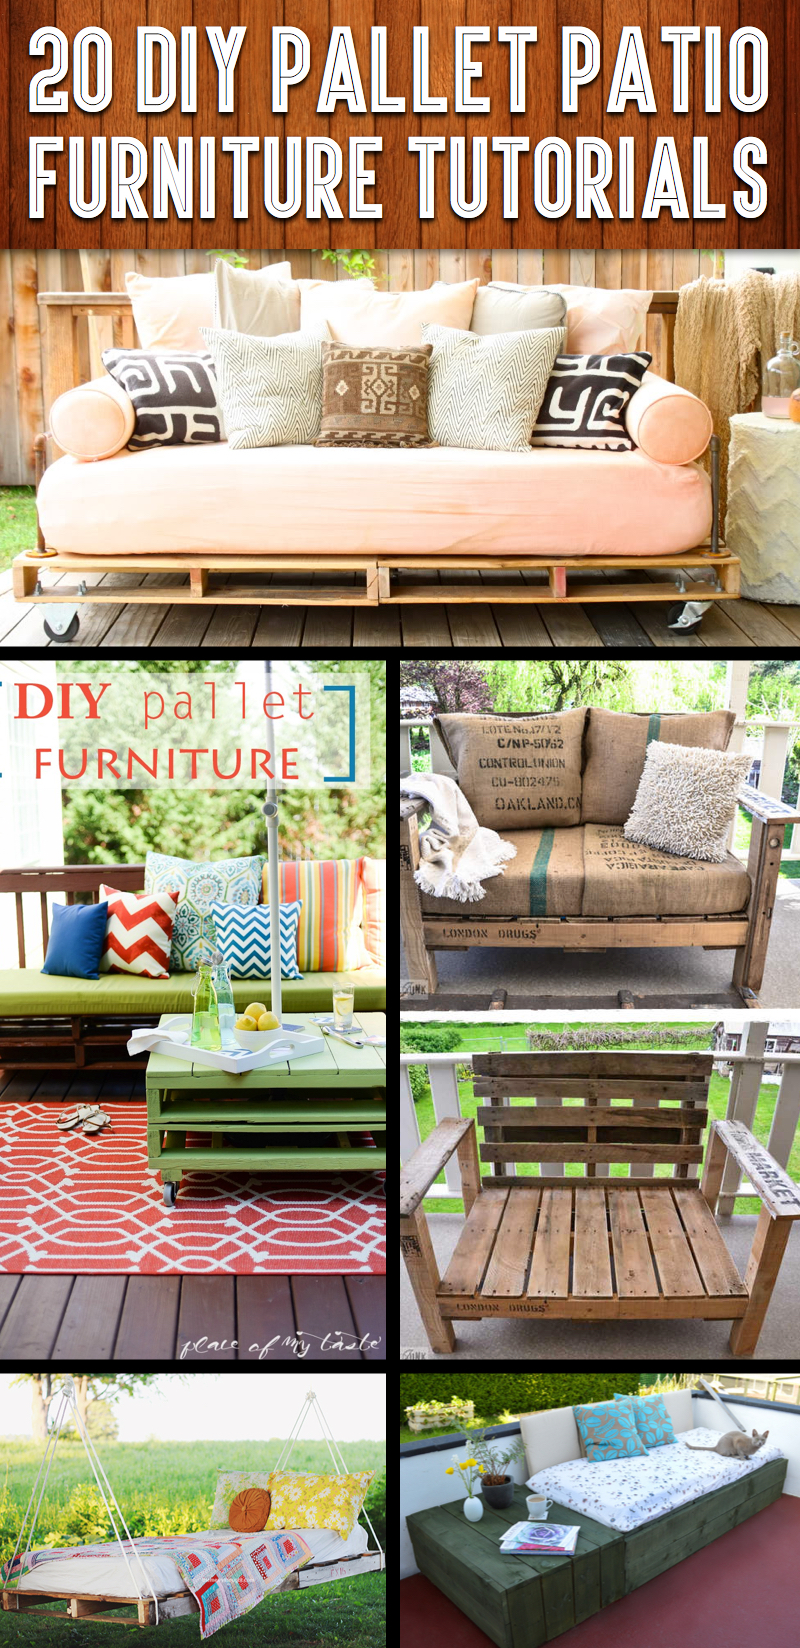 Garden Furniture Using Pallets 20 diy pallet patio furniture tutorials for a chic and practical